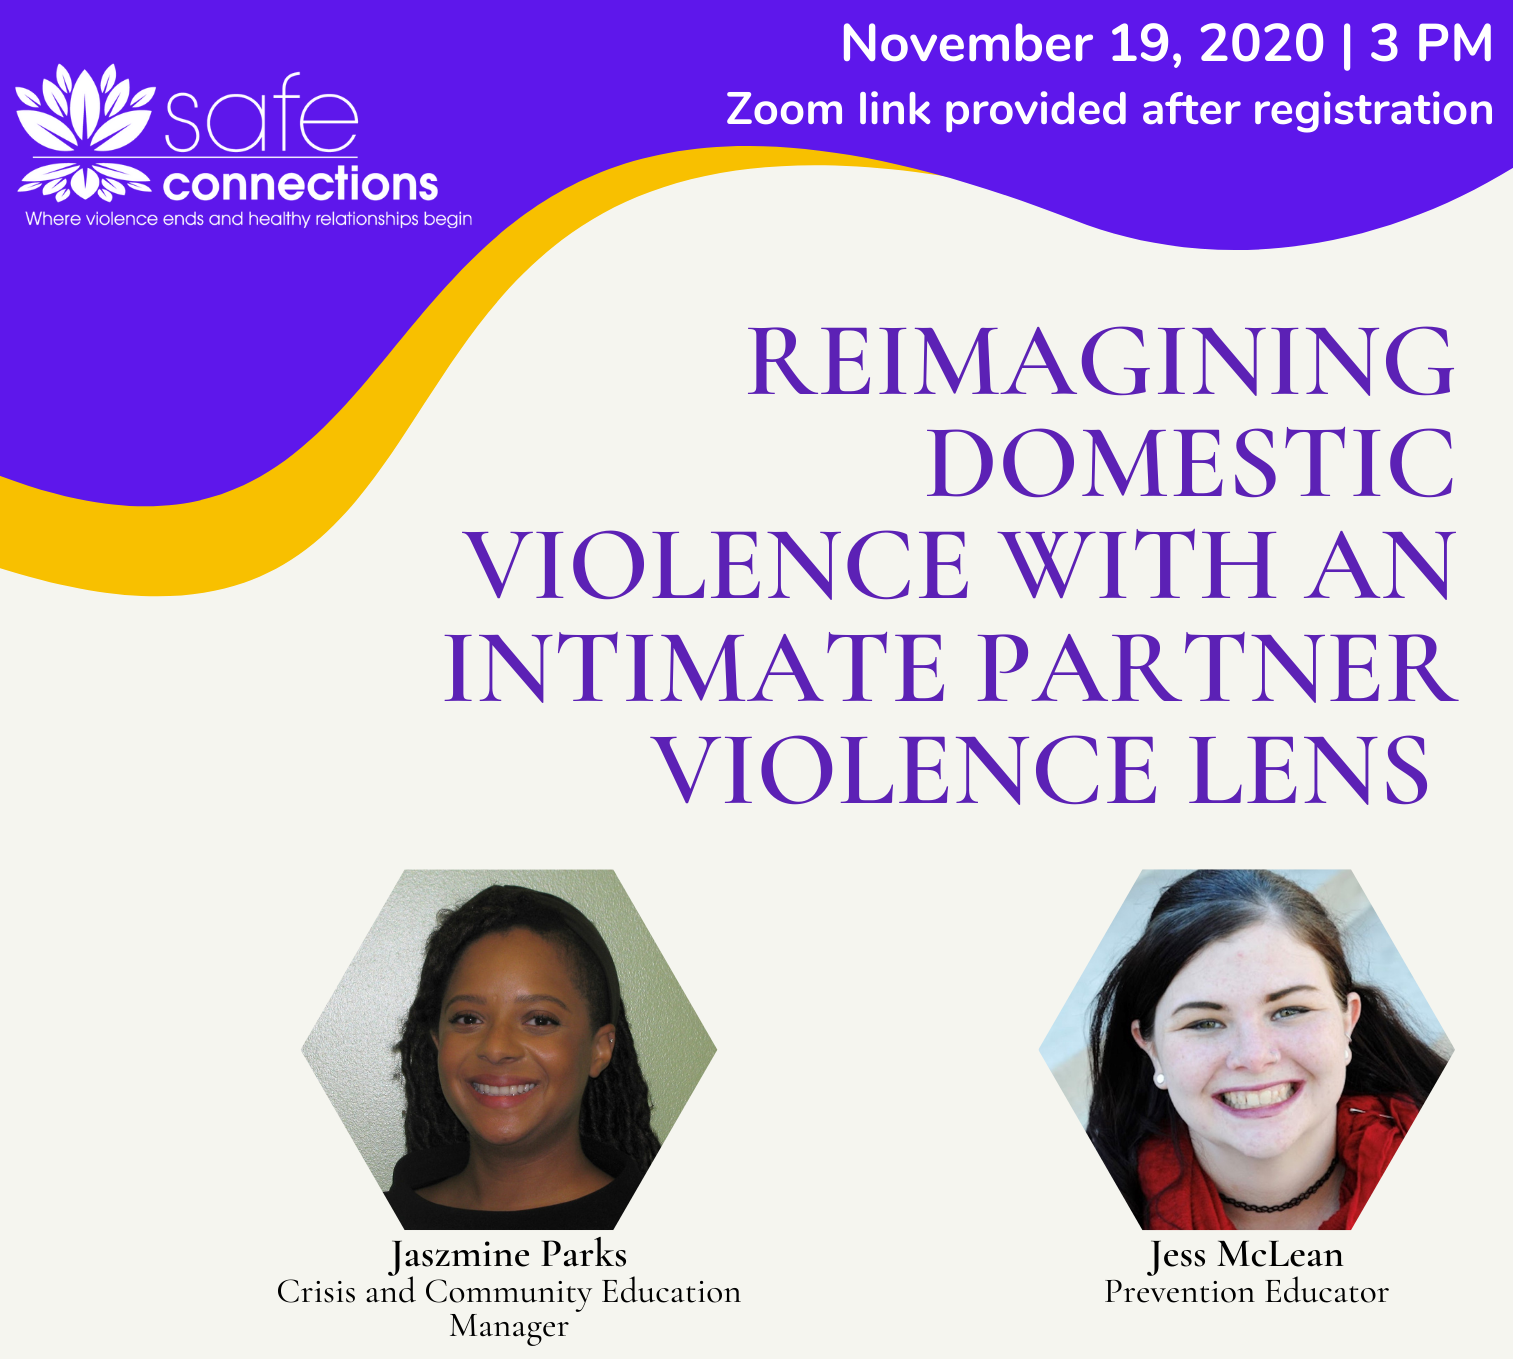 Reimagining Domestic Violence With An Intimate Partner Violence Lens